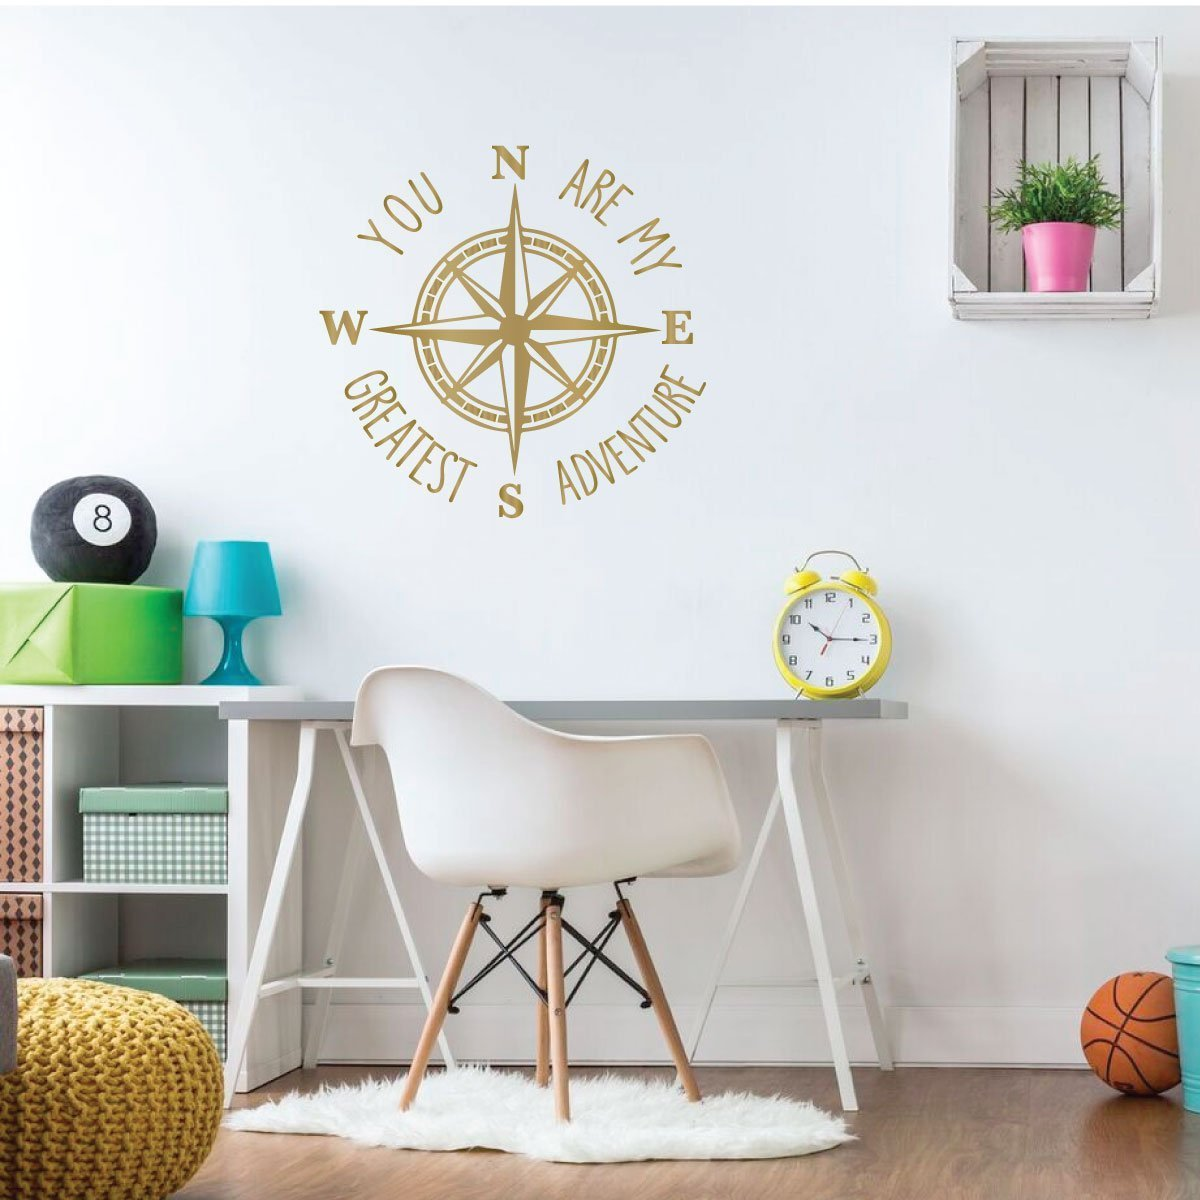 Compass Wall Decal Study Area or Living Room Decor You Are My Greatest Adventure Vinyl Sticker Decorations for Bedroom Playroom